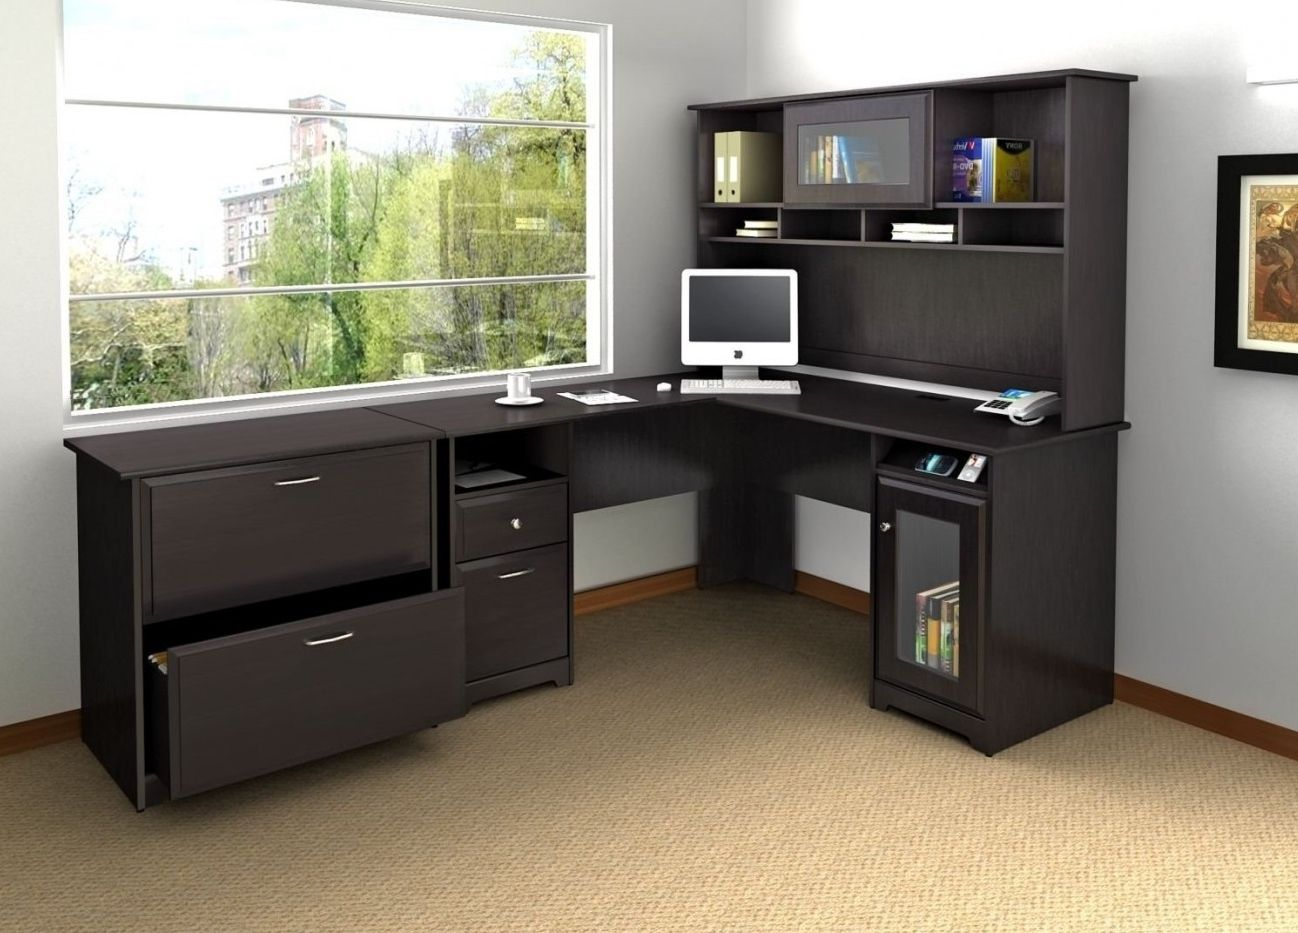 Cool Corner Desk Home Office Built In Home Office Designs Home Office Cabinetry Design Small Desks For Home Office Office Desk Meja Makan Kayu Jati Furniture